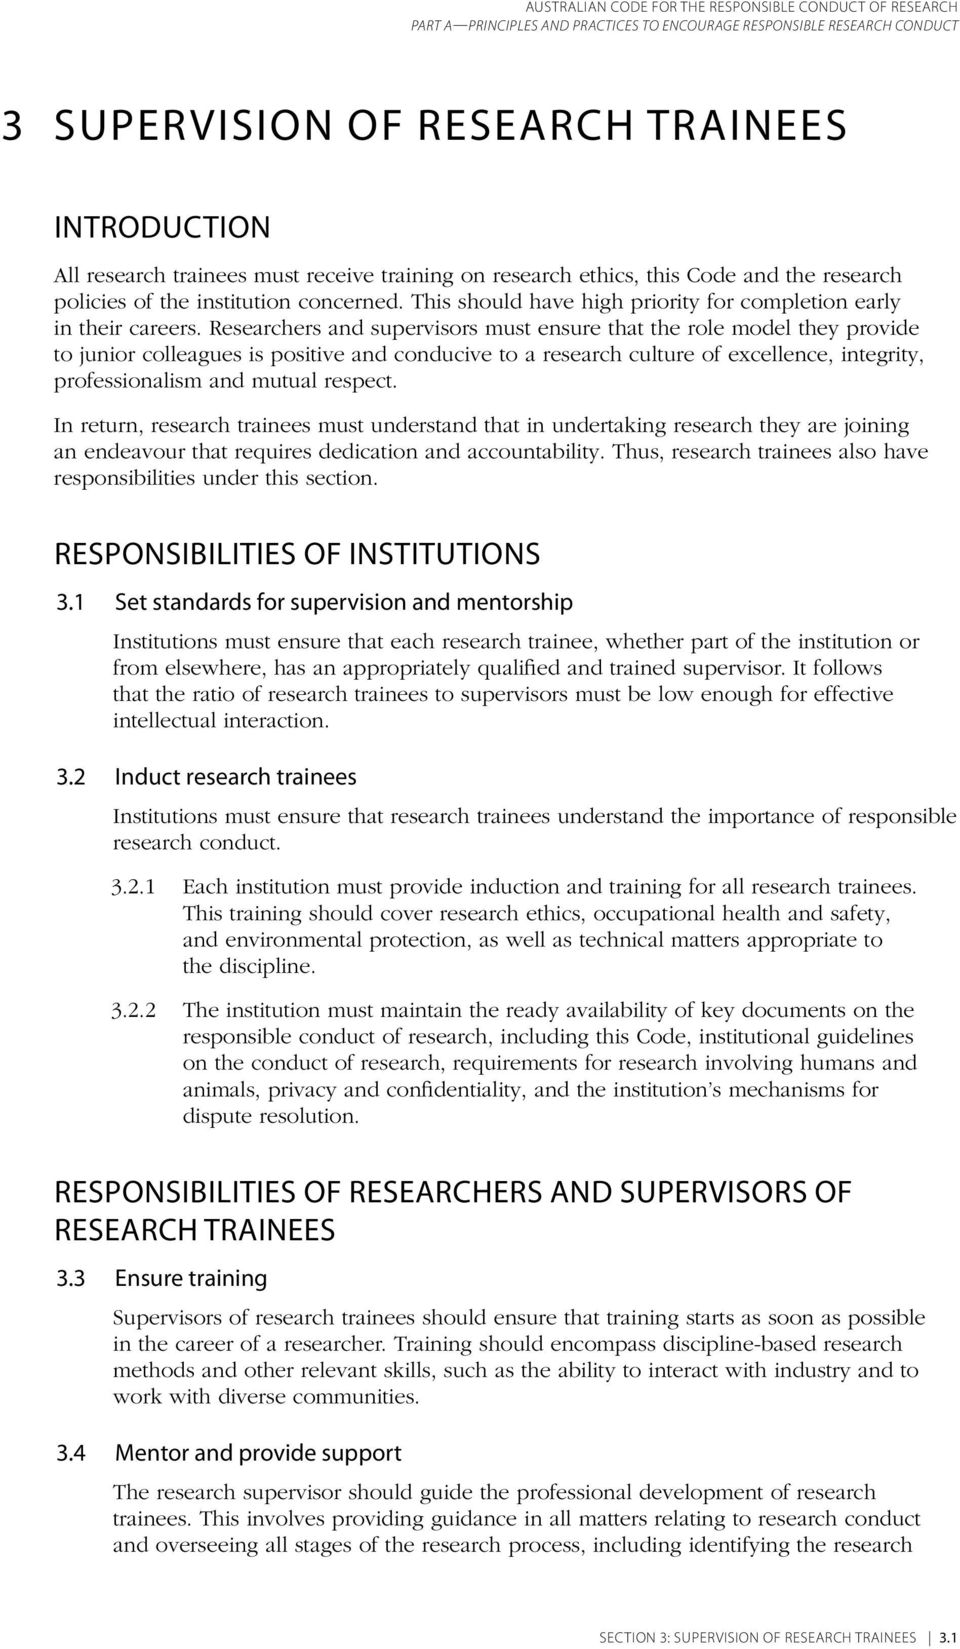 Researchers and supervisors must ensure that the role model they provide to junior colleagues is positive and conducive to a research culture of excellence, integrity, professionalism and mutual